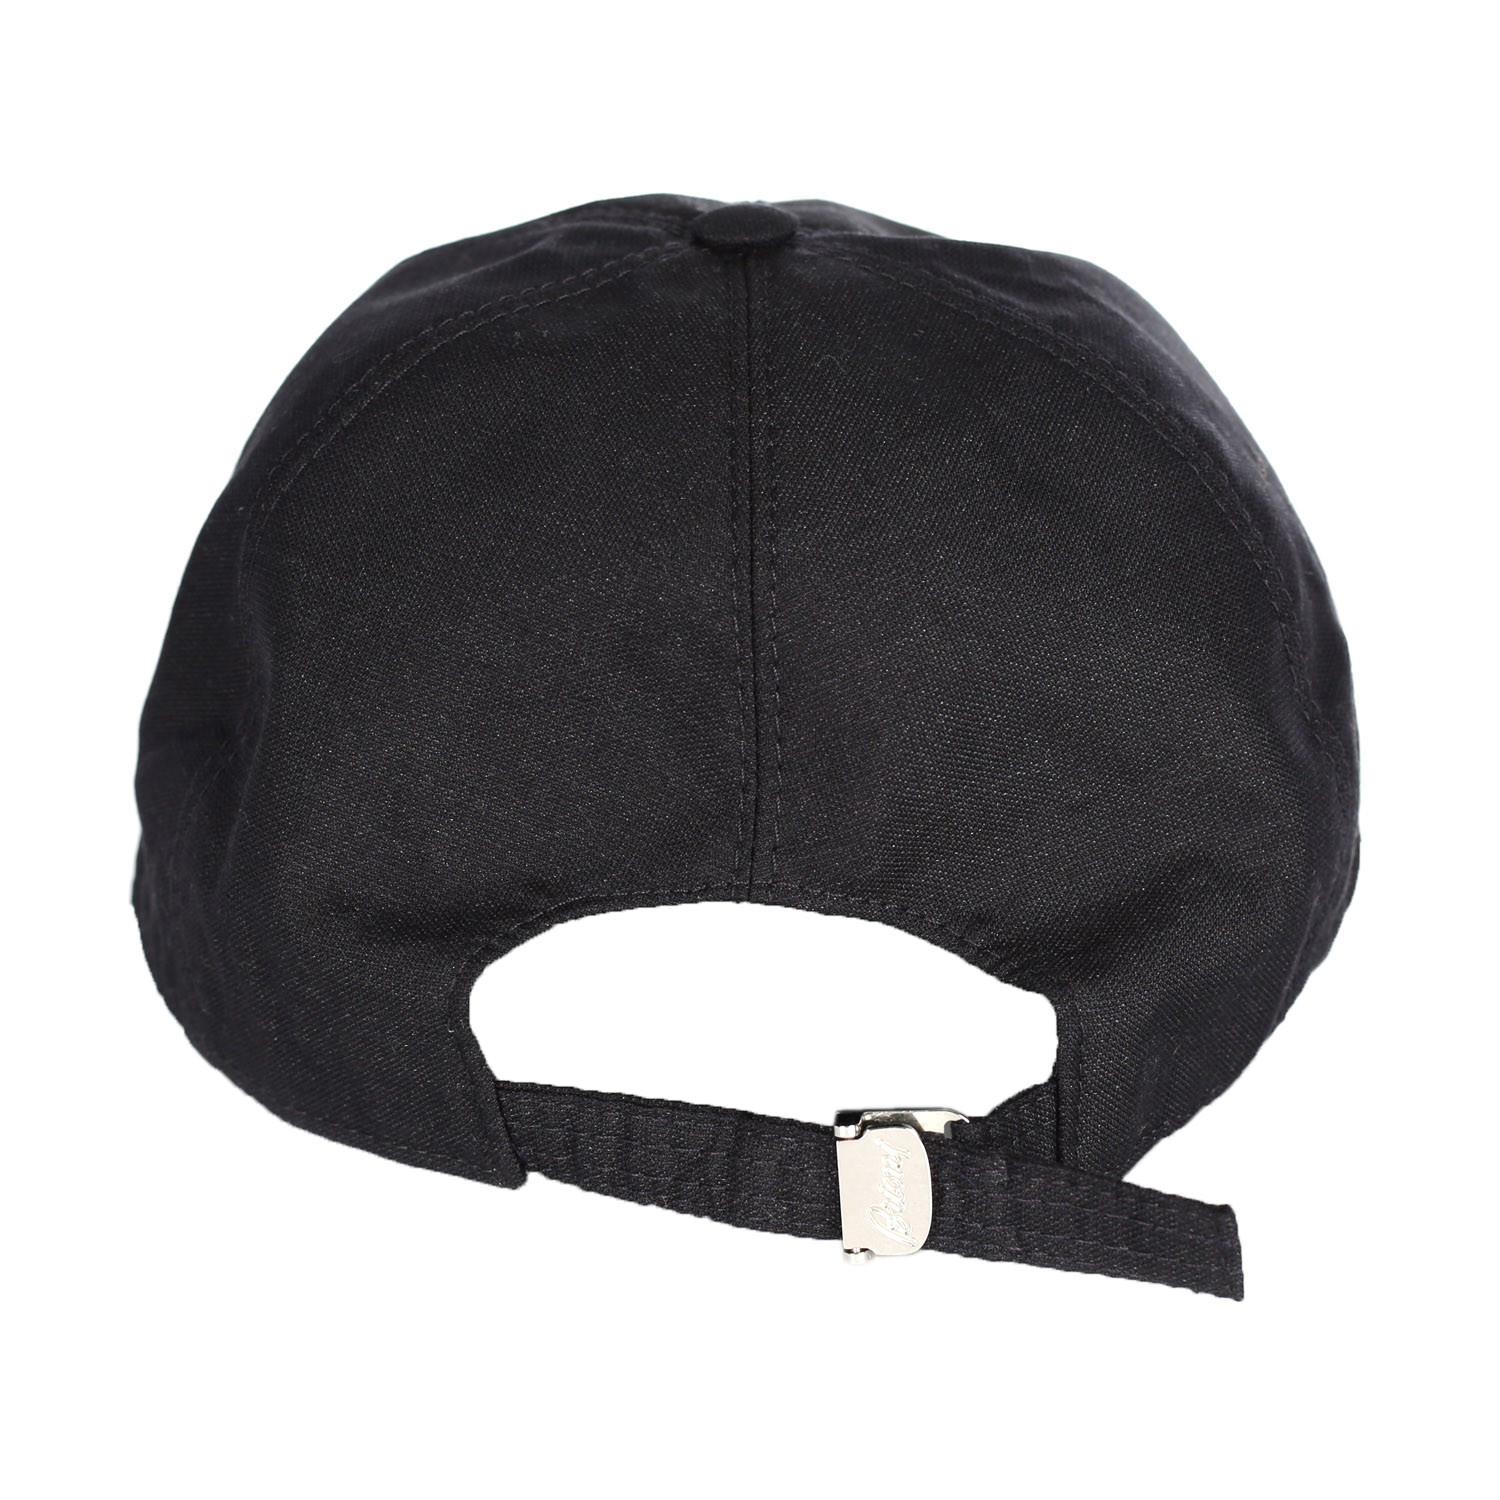 d9c0a8594b2 Silk Baseball Hat    Black - BRIONI - Touch of Modern